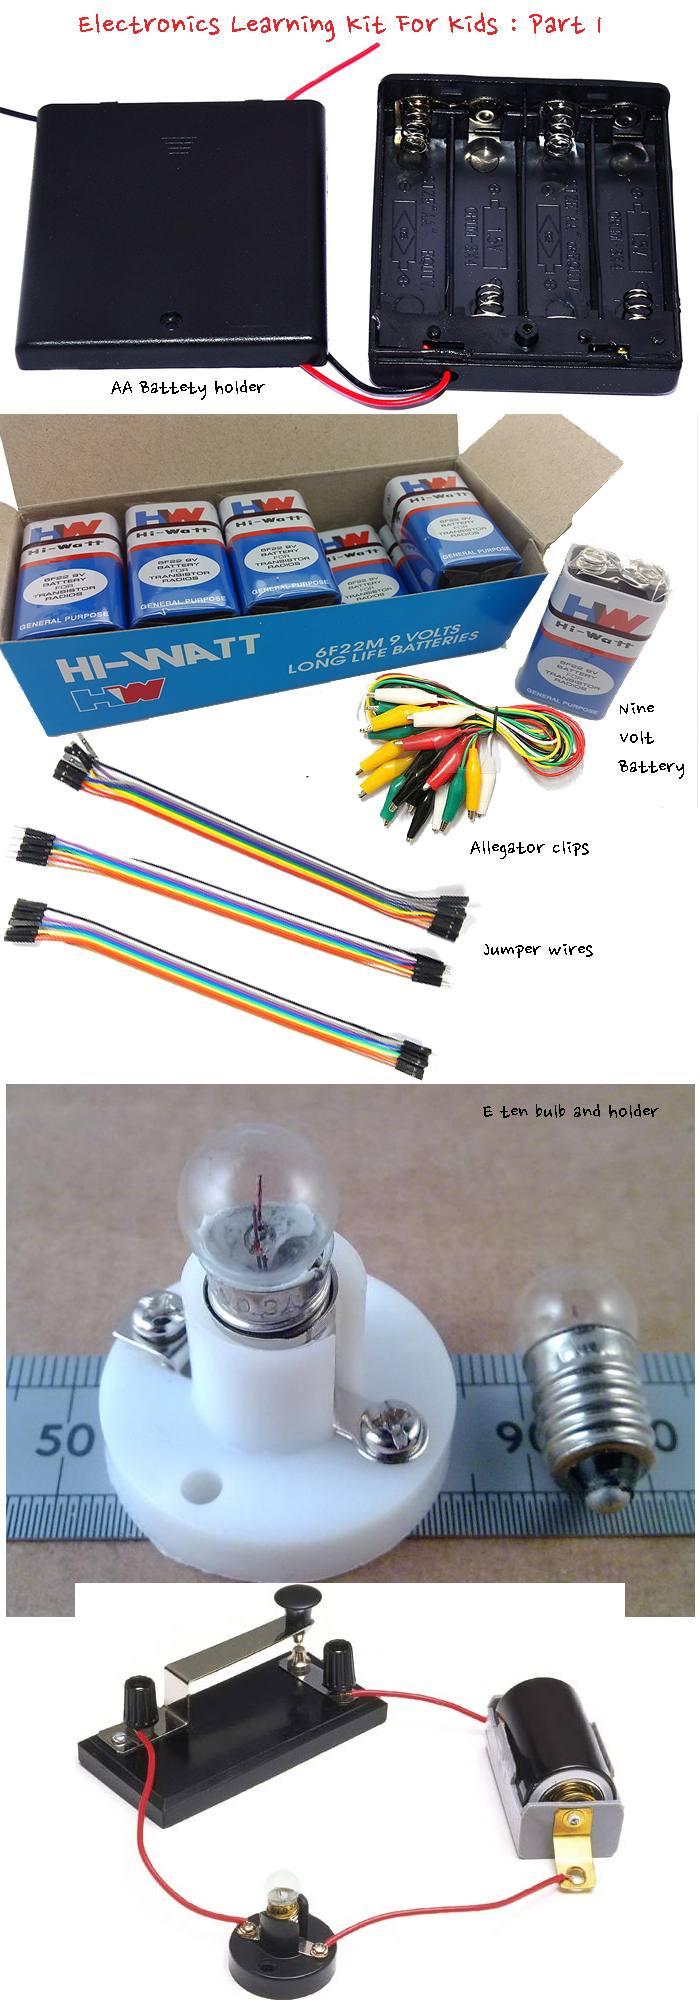 Electronics-Learning-Kit-For-Kids